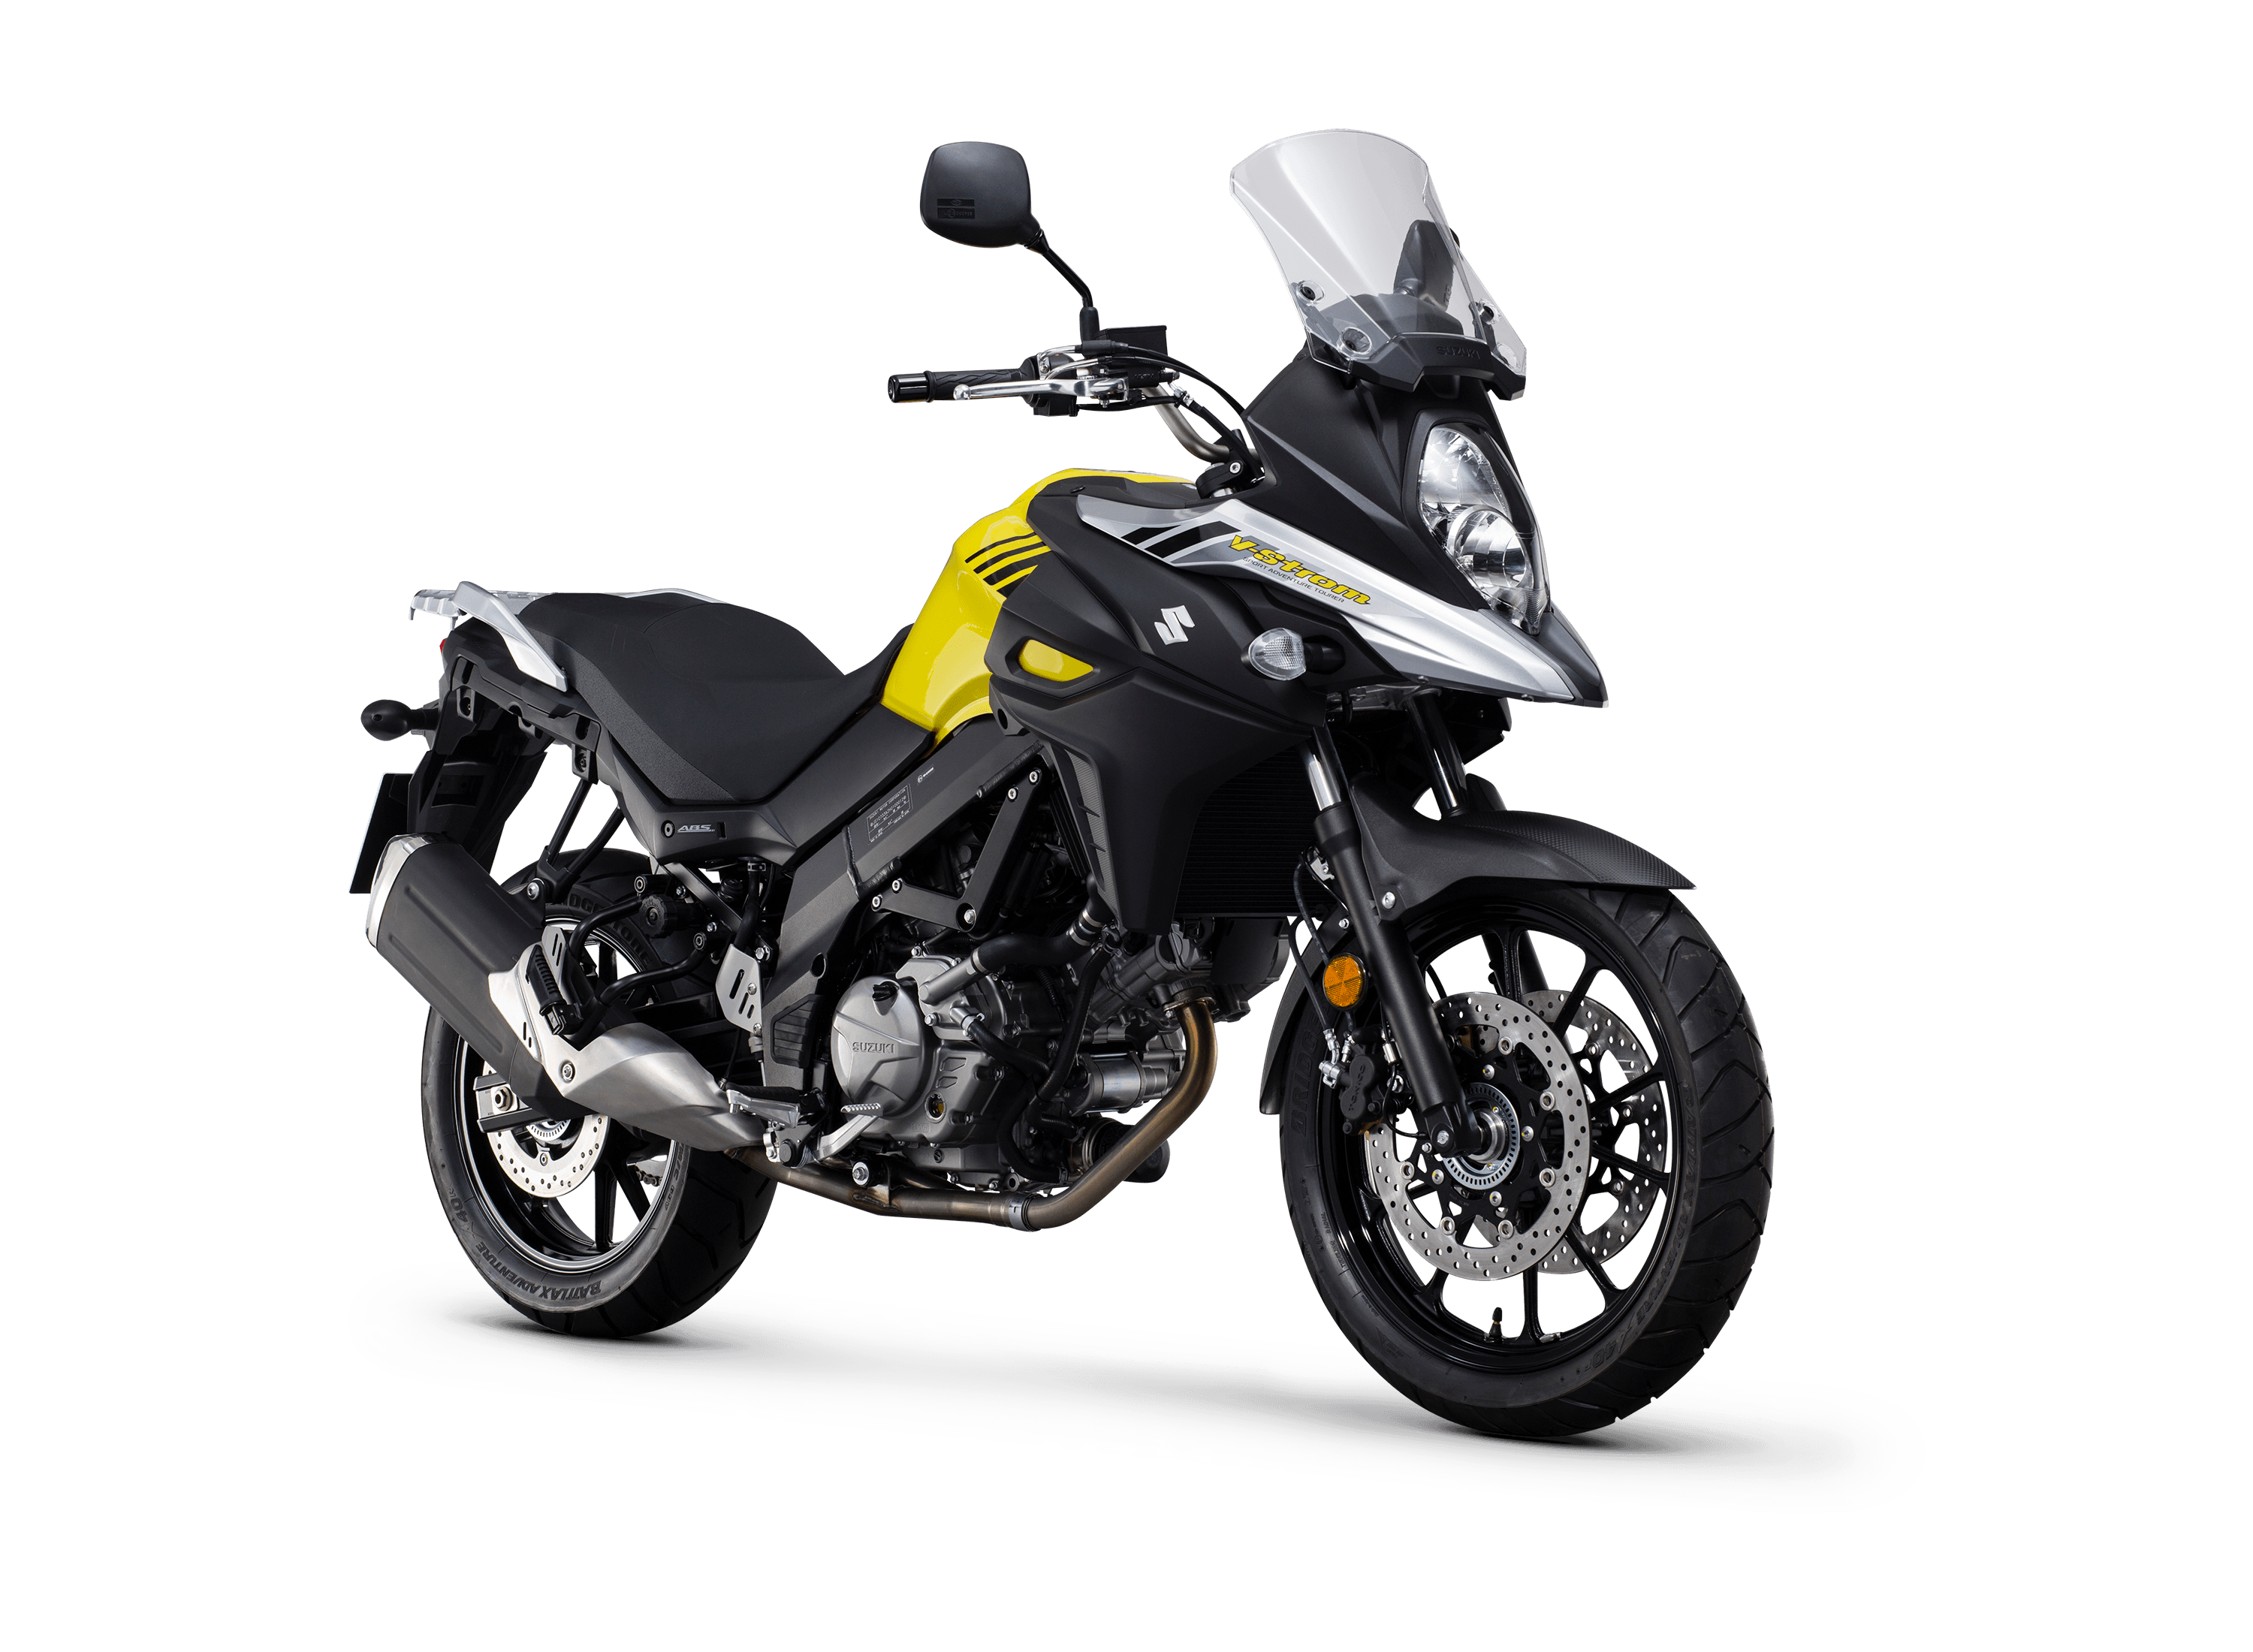 v strom_650_yellow_front34_facing_right?anchor\=center\&mode\=crop\&width\=1600\&rnd\=131317221040000000 2016 suzuki v strom 650 wiring diagram 2015 suzuki v strom 650 2003 Suzuki SV650 at fashall.co